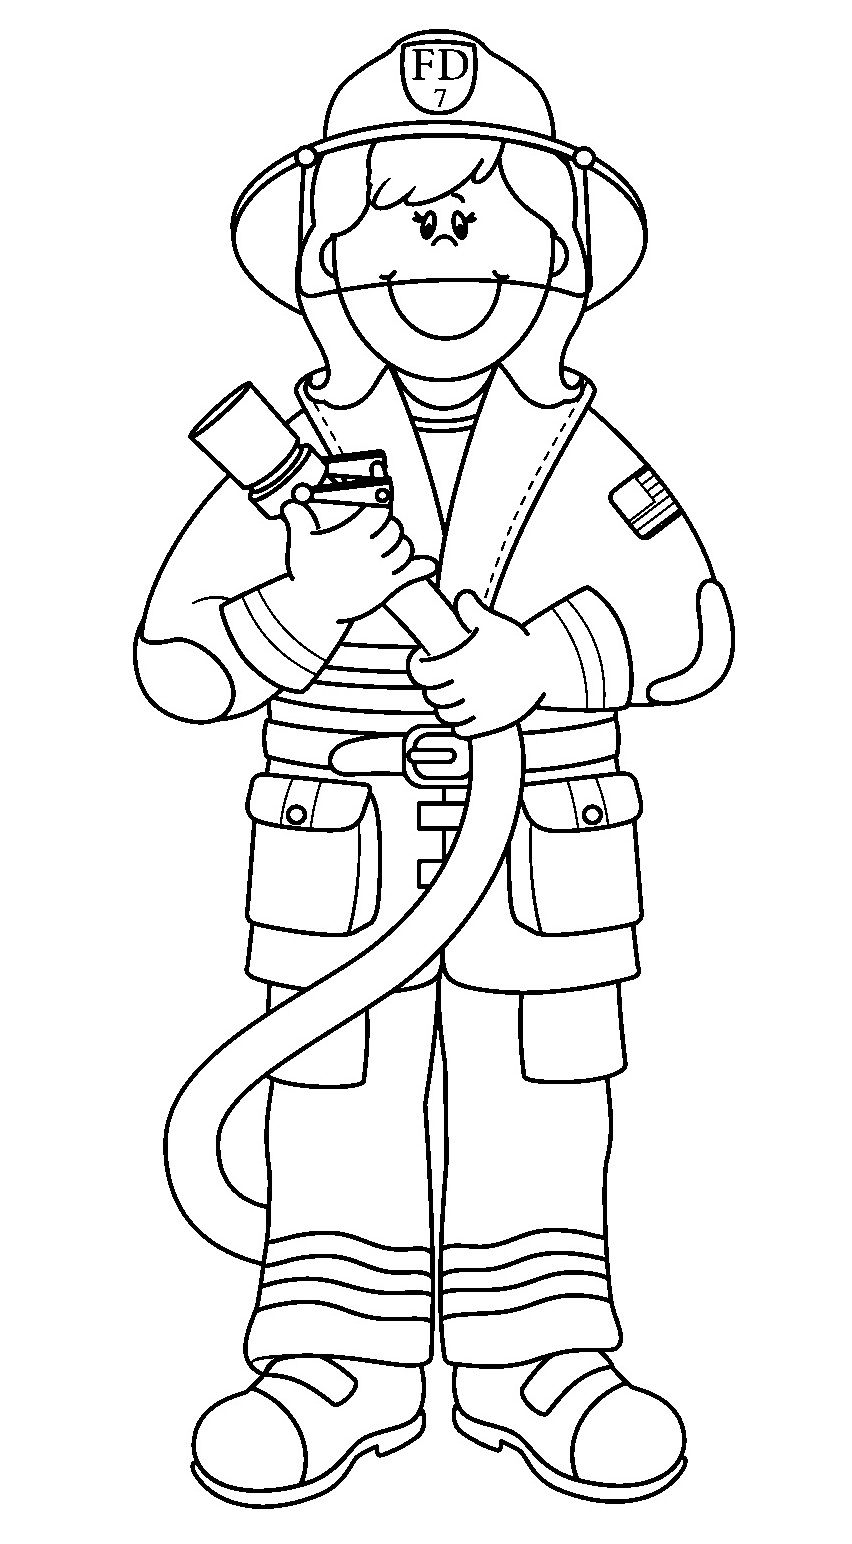 Printable Firefighter Coloring Pages Coloring Me Firefighter Clipart Firefighter Crafts Coloring Pages